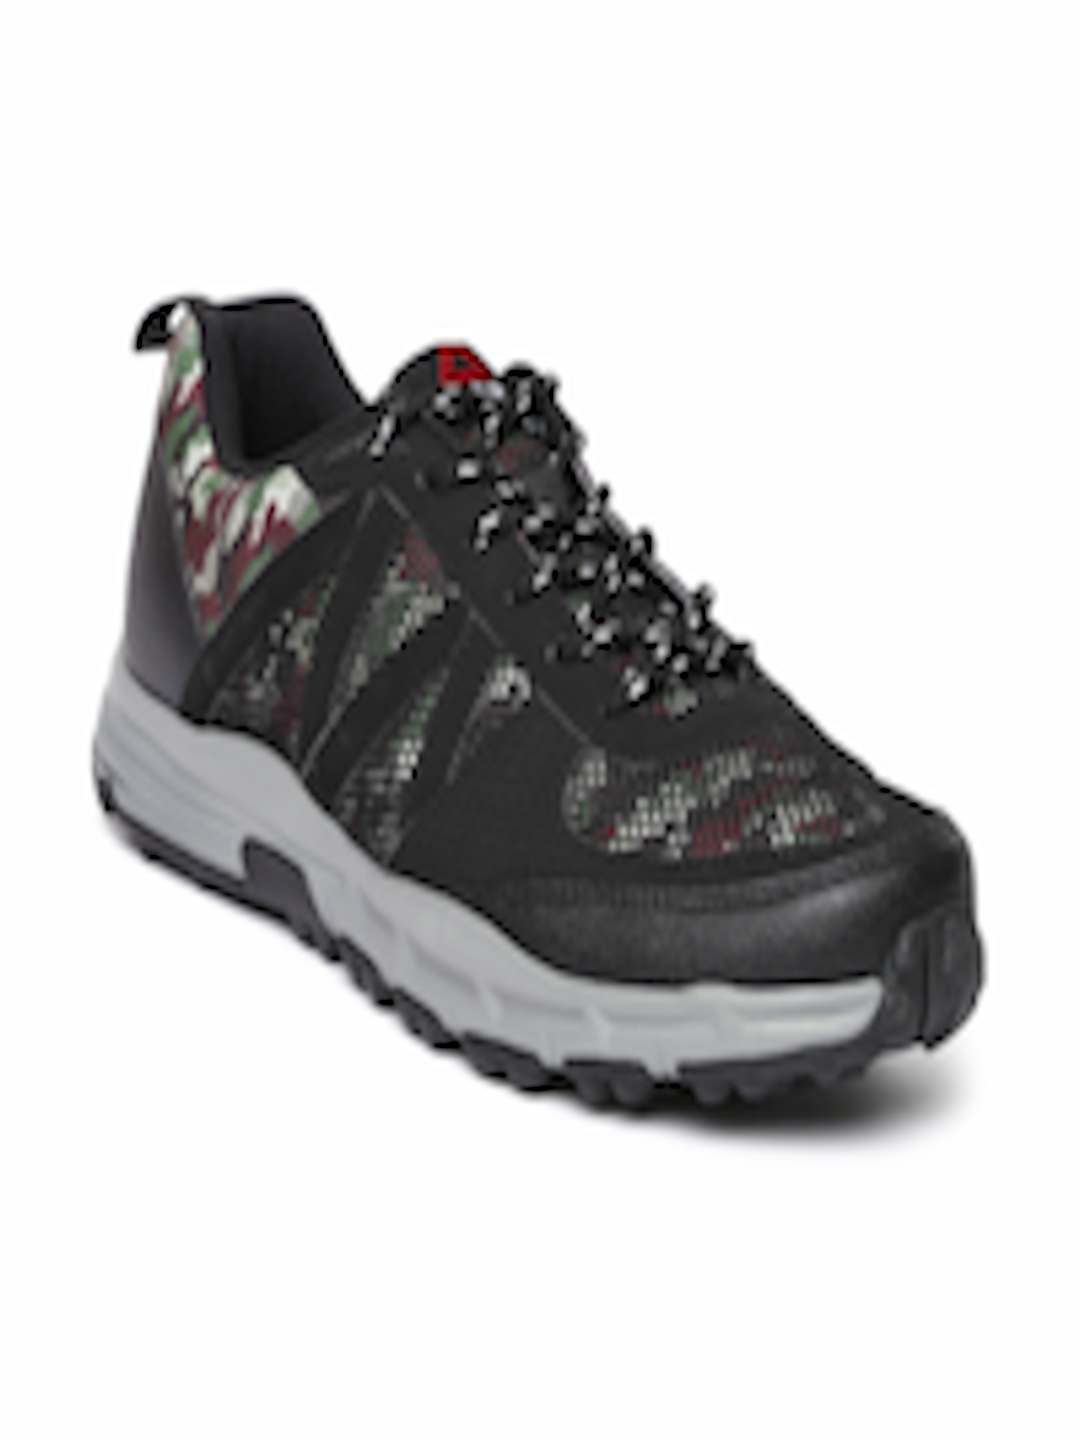 Buy Reebok Men Black Camo Trek Camouflage Print Outdoor Shoes - Sports Shoes  for Men 1122731  3420a00e3